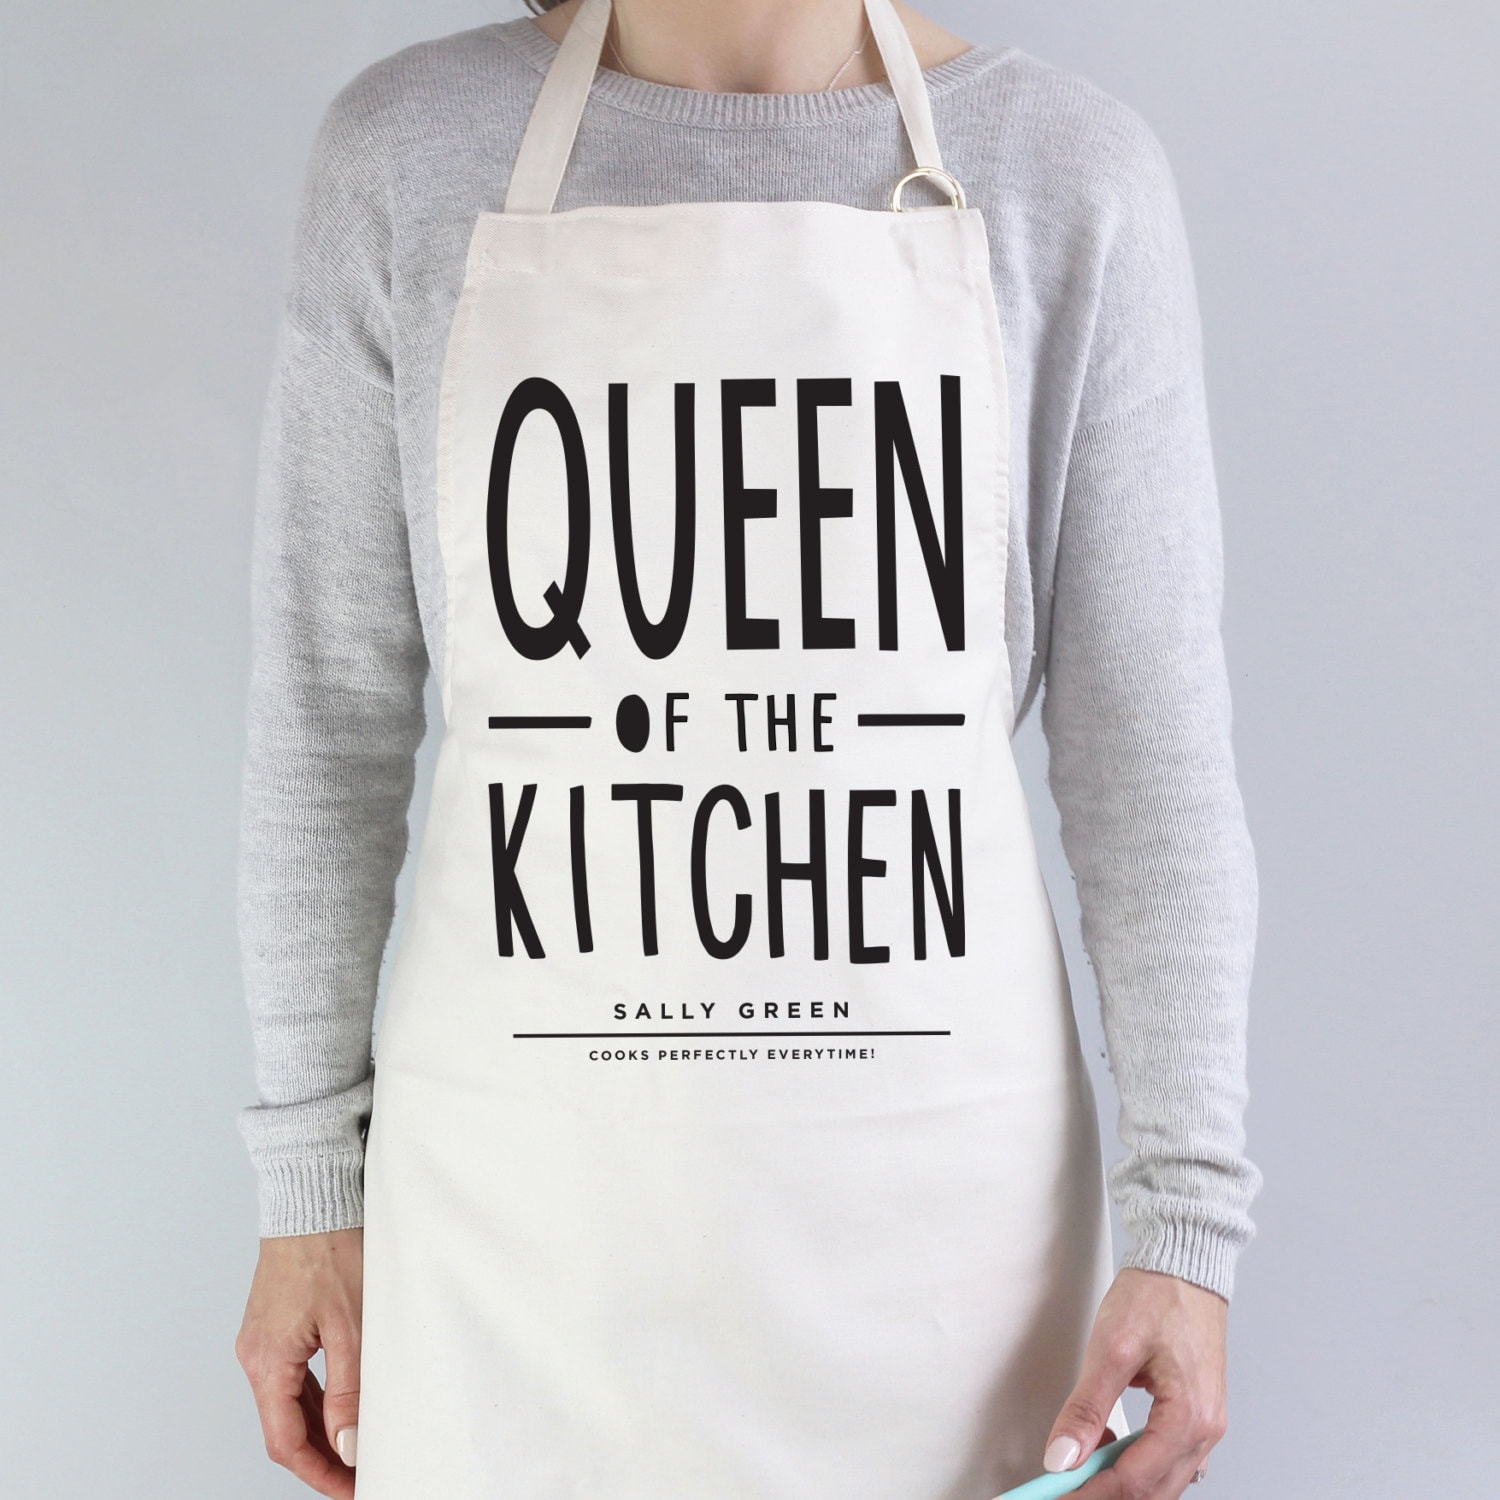 Queen of The Kitchen Apron personalised apron baking gift | Etsy